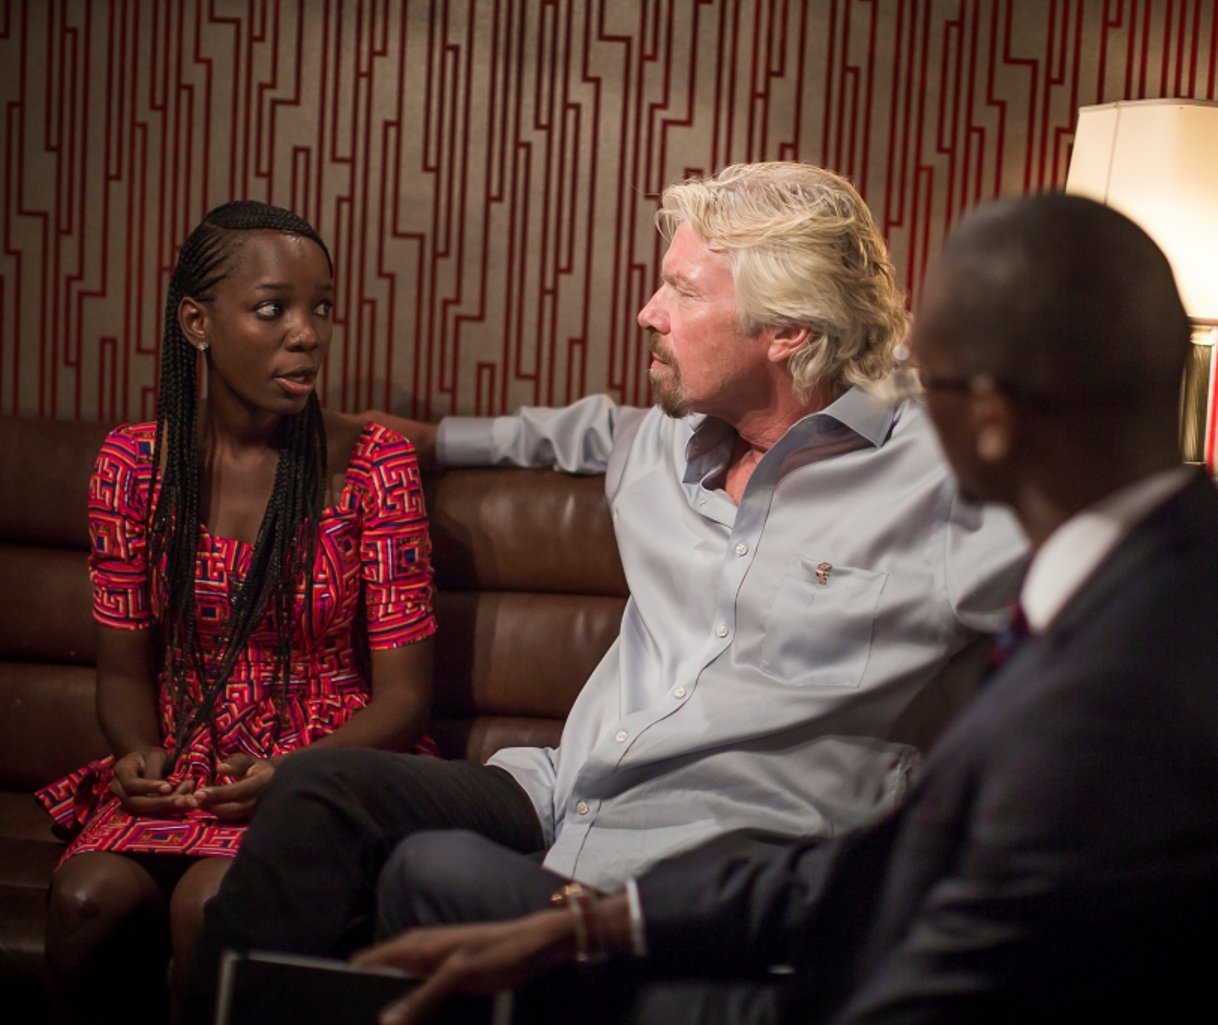 Richard Branson with the Challenge winners